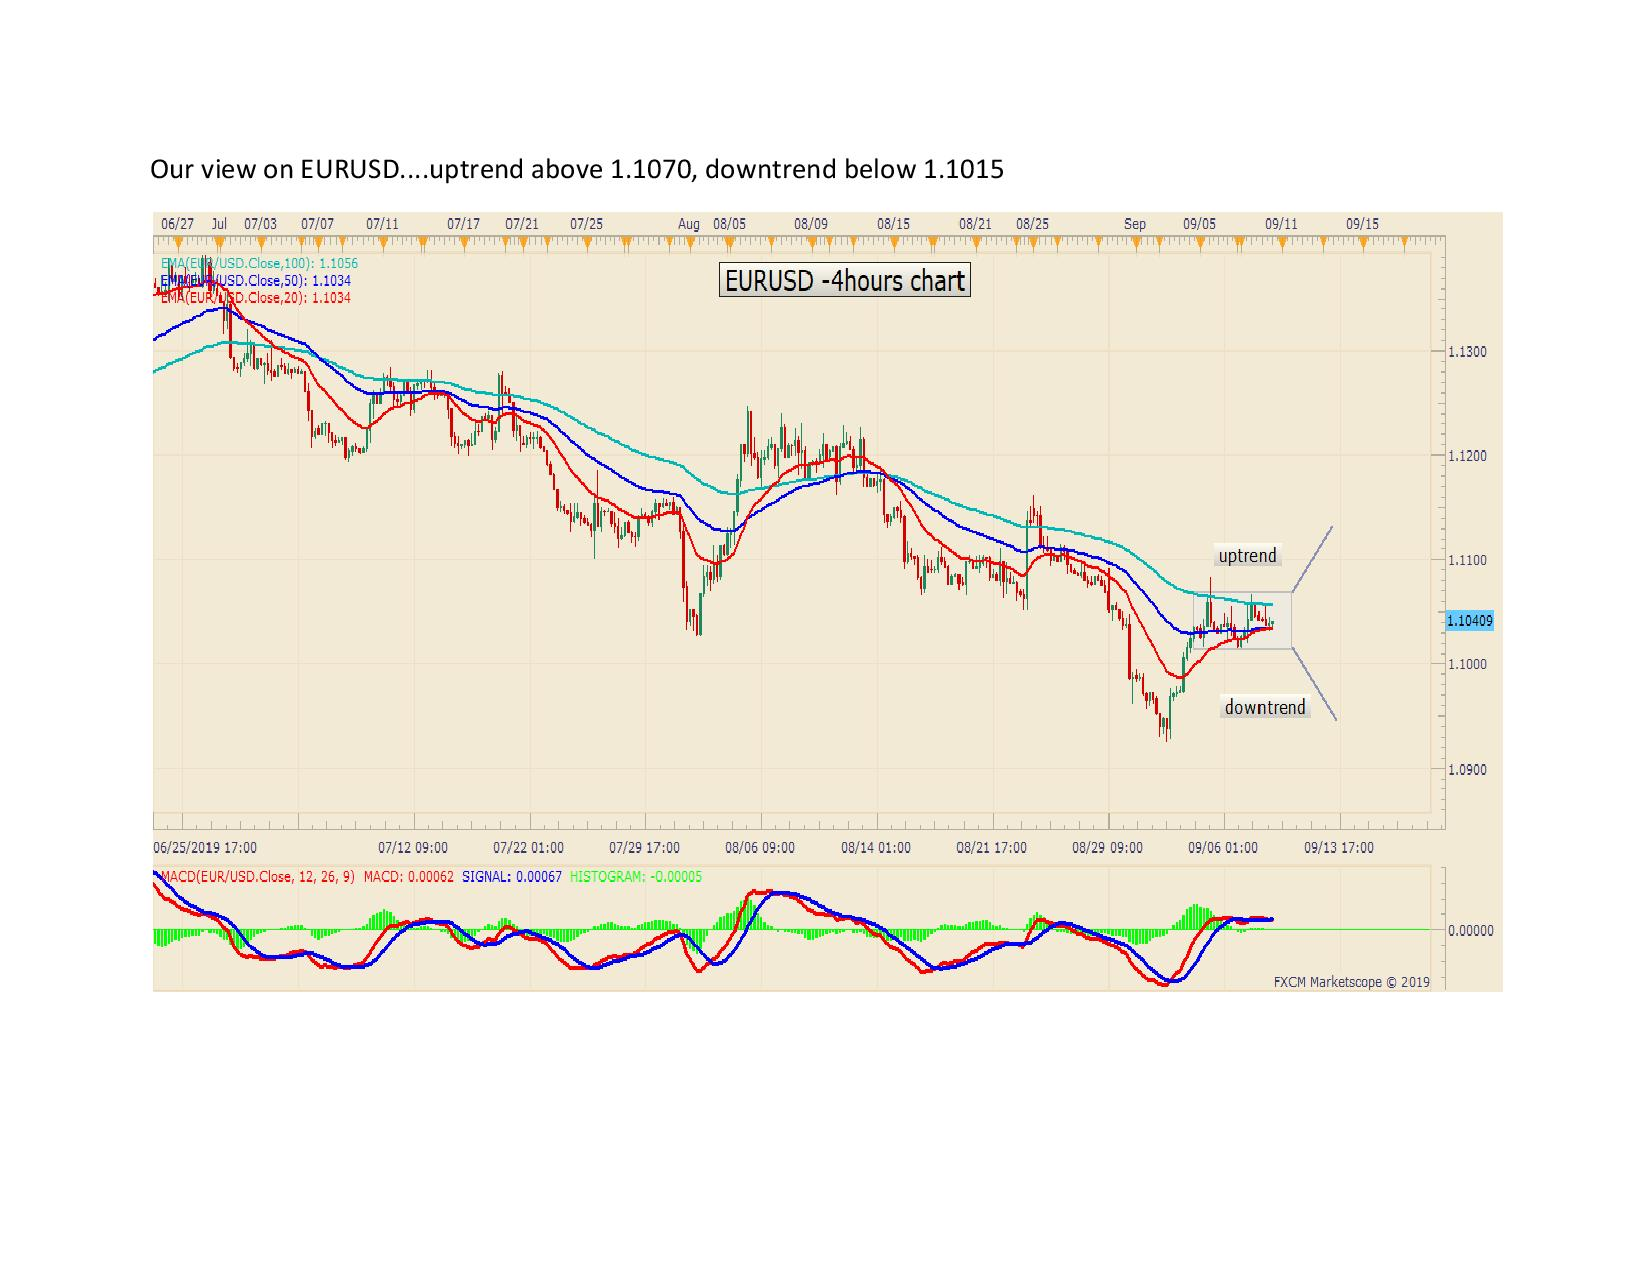 Our view on EURUSD page 0012